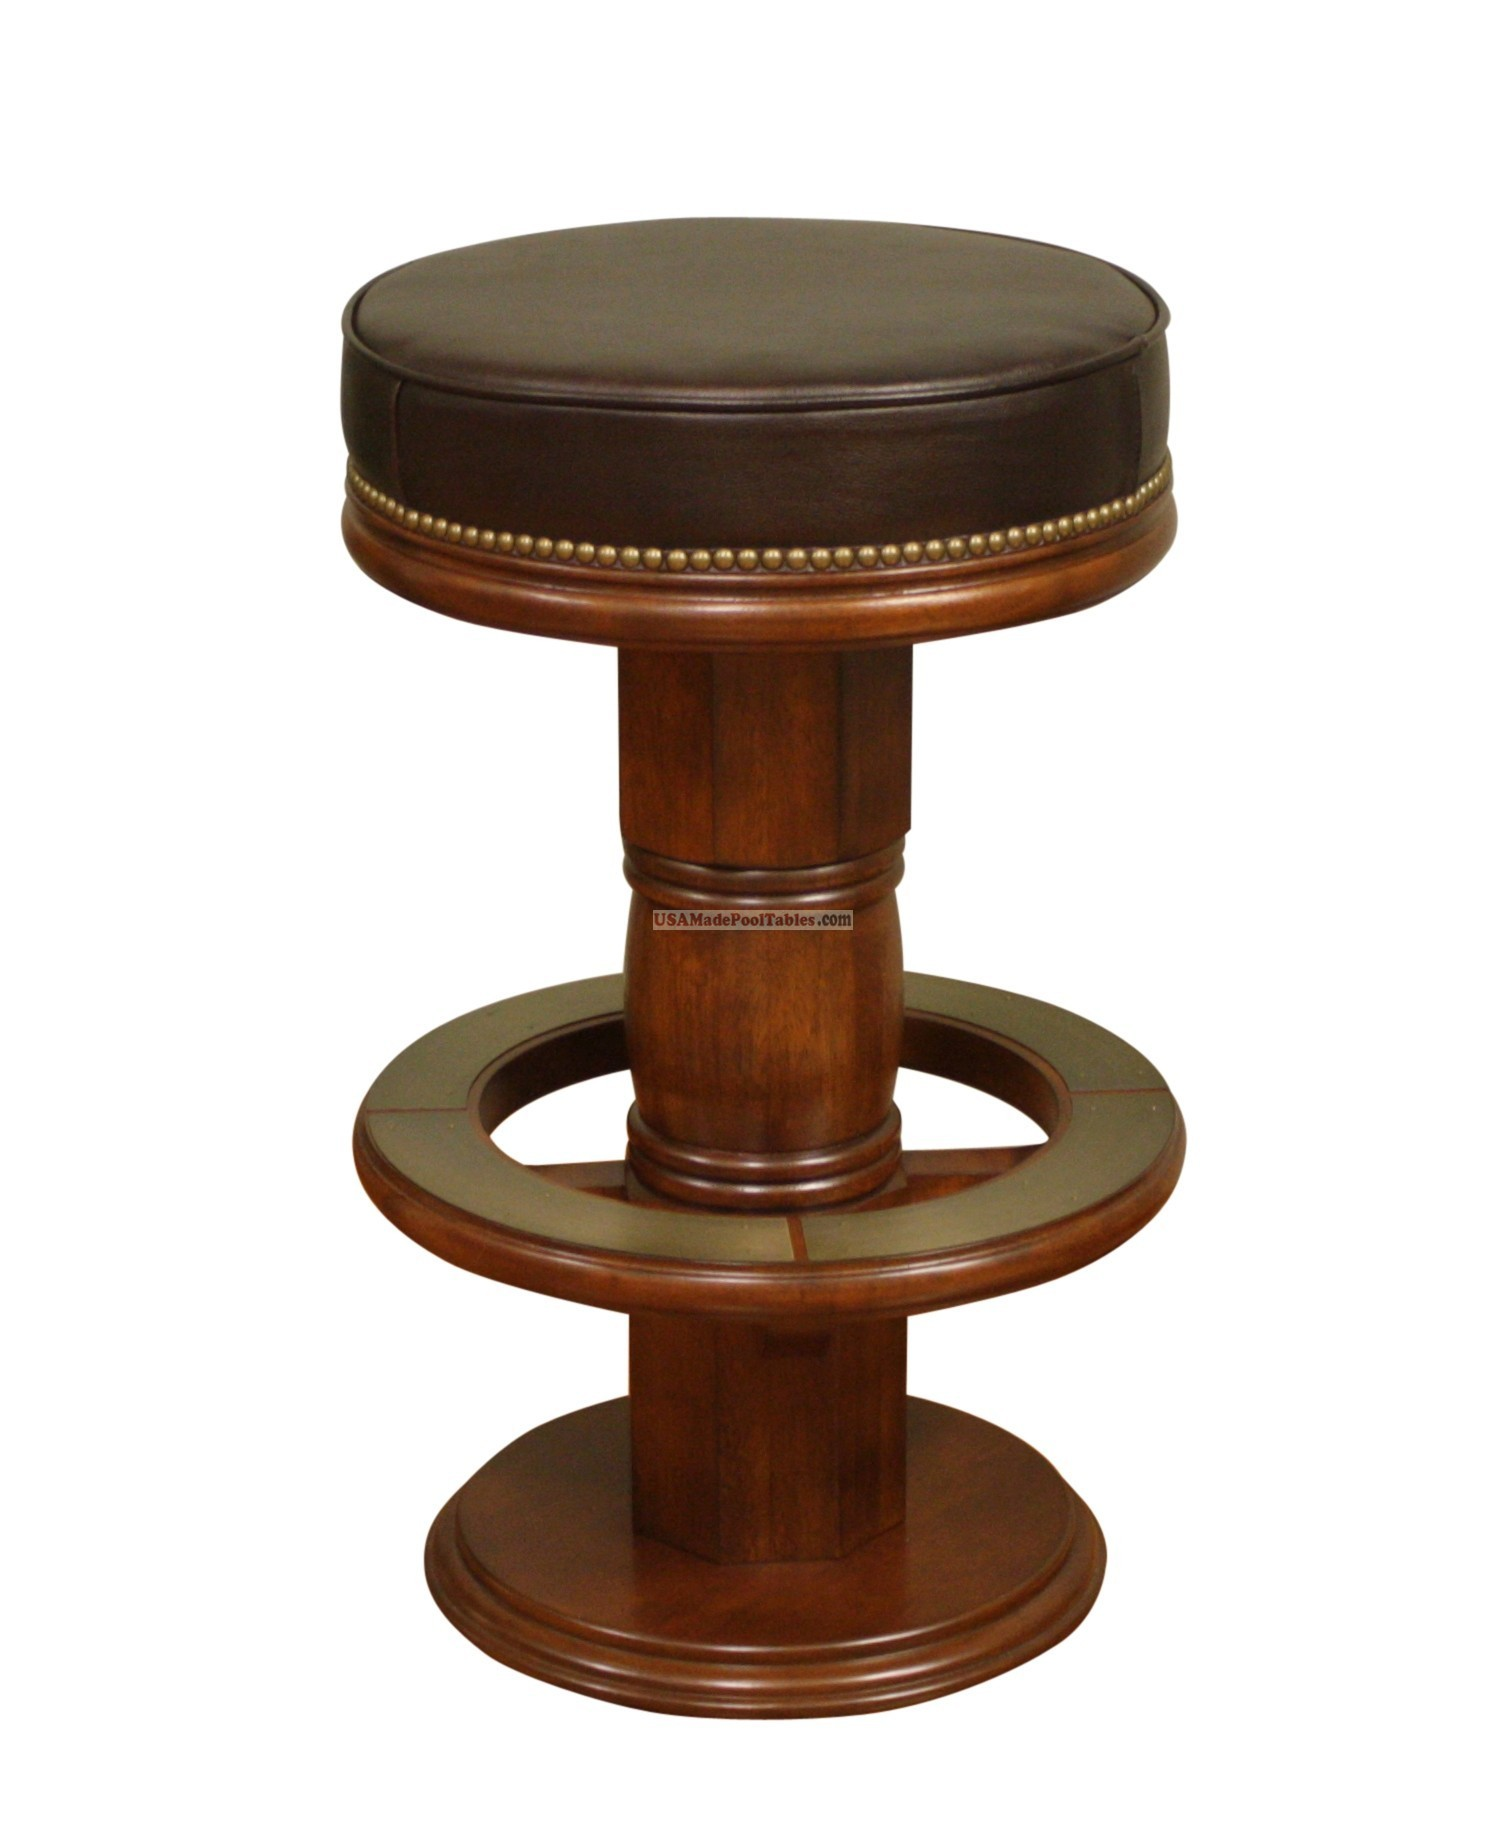 awesome wooden upholstered bar stool design with brown leather bolster and round footrest and carved woodne  sc 1 st  HomesFeed & Hang Out Stylishly and Sitting Comfortably on Upholstered Bar ... islam-shia.org